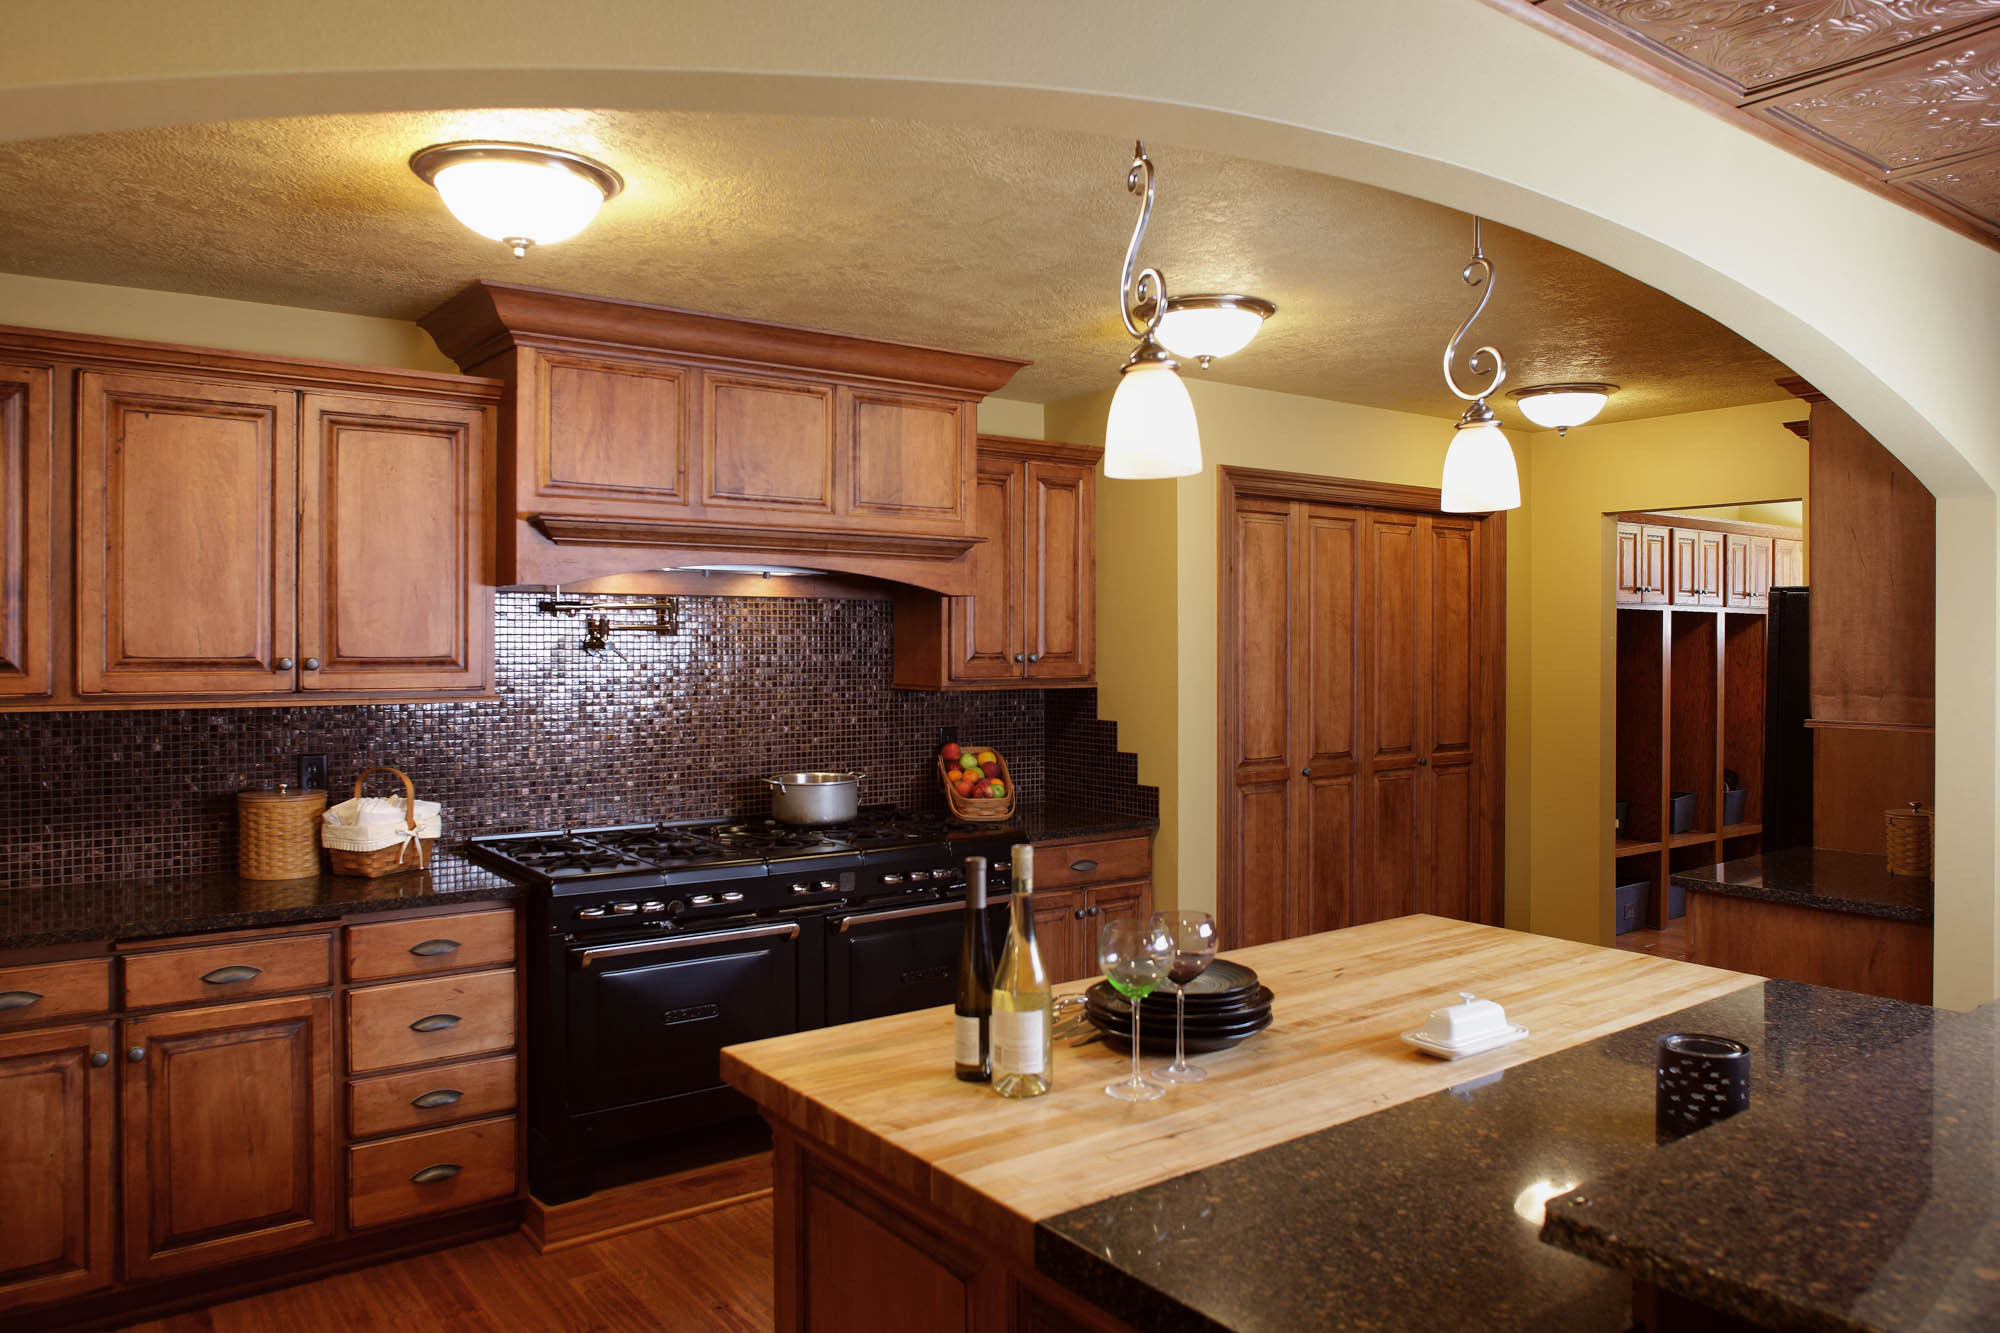 Renew | Stained kitchen cabinets in Vintage Autumn by Showplace Cabinetry - view 2